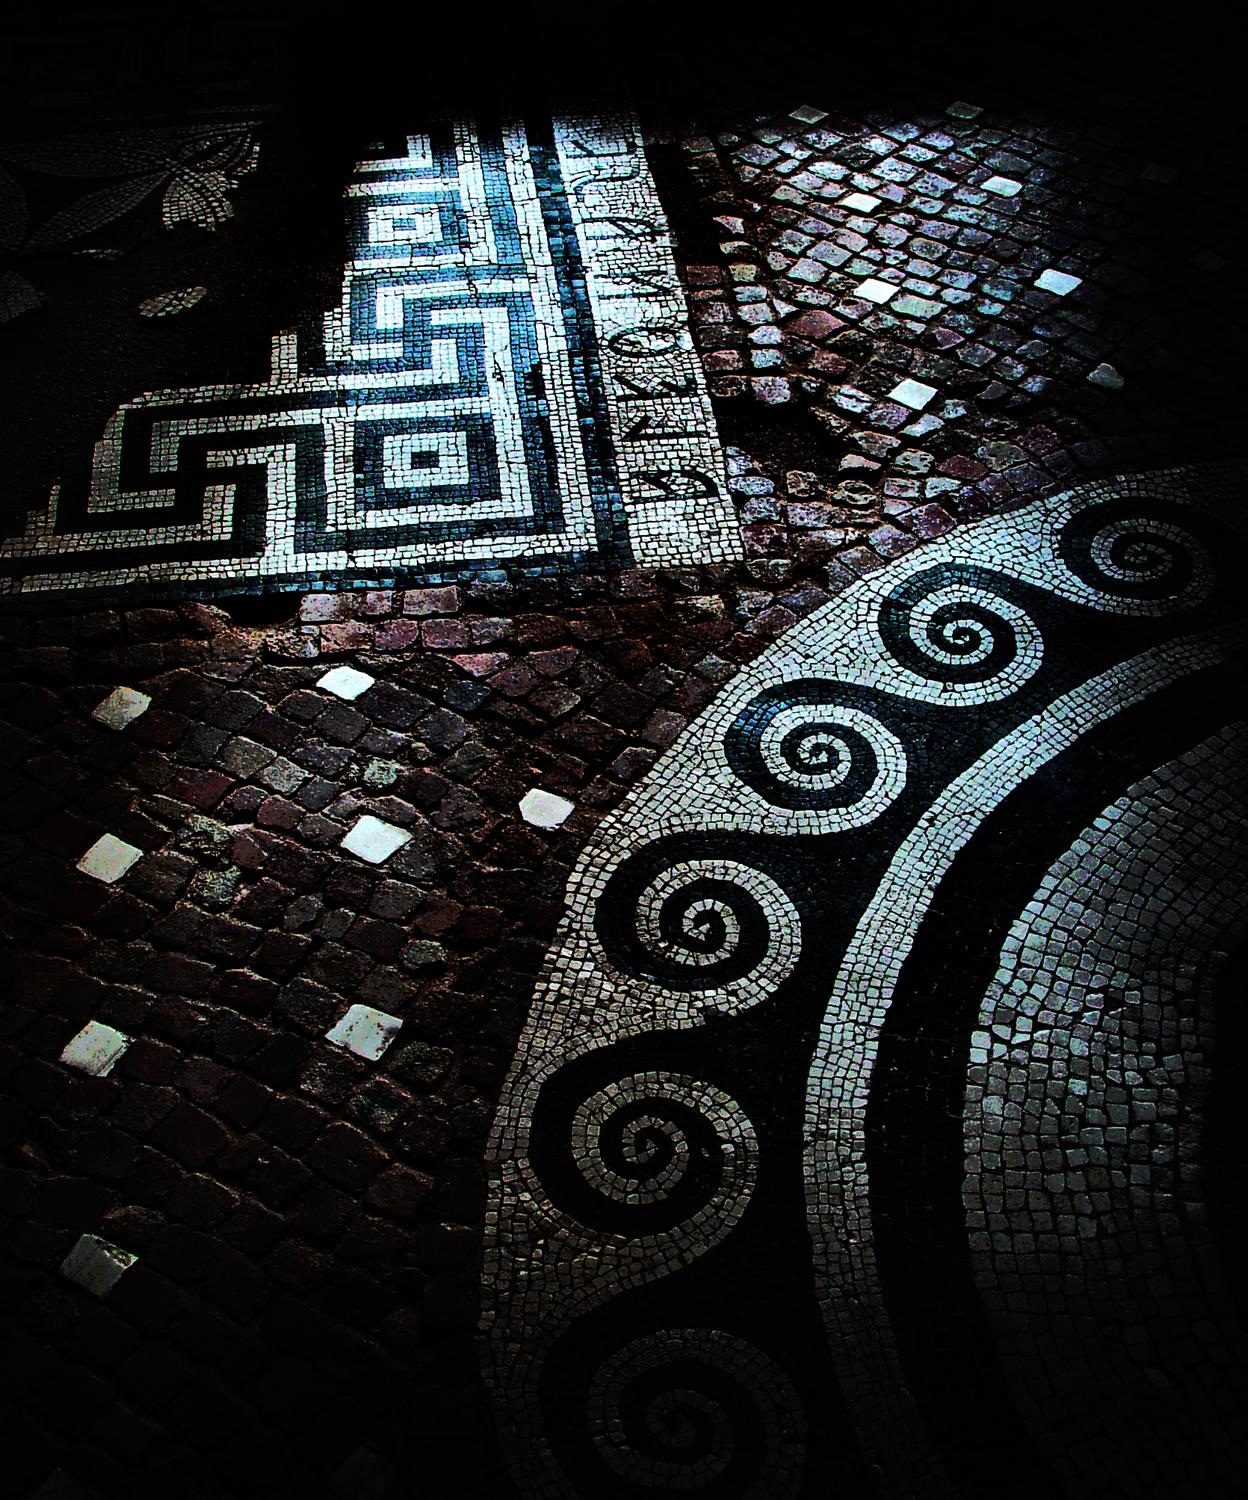 - Etruscan floor - Techno-Impressionist Museum - Techno-Impressionism - art - beautiful - photo photography picture - by Tony Karp